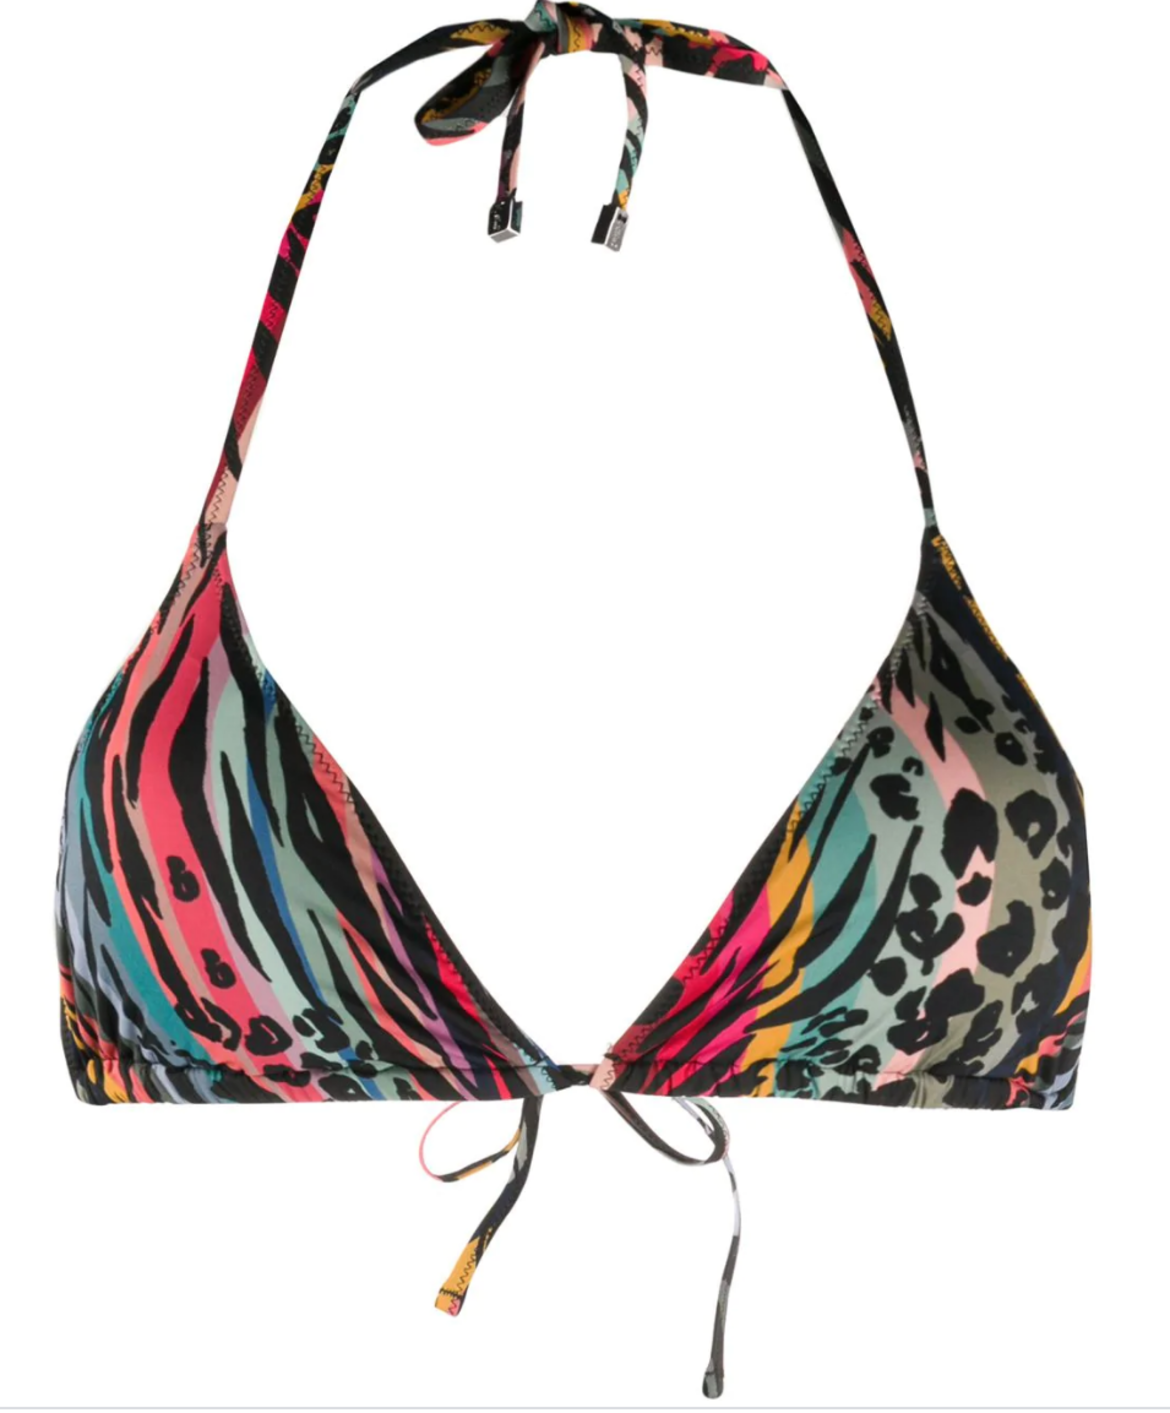 PAUL SMITH animal-print triangle bikini top HK$790 from farfetch